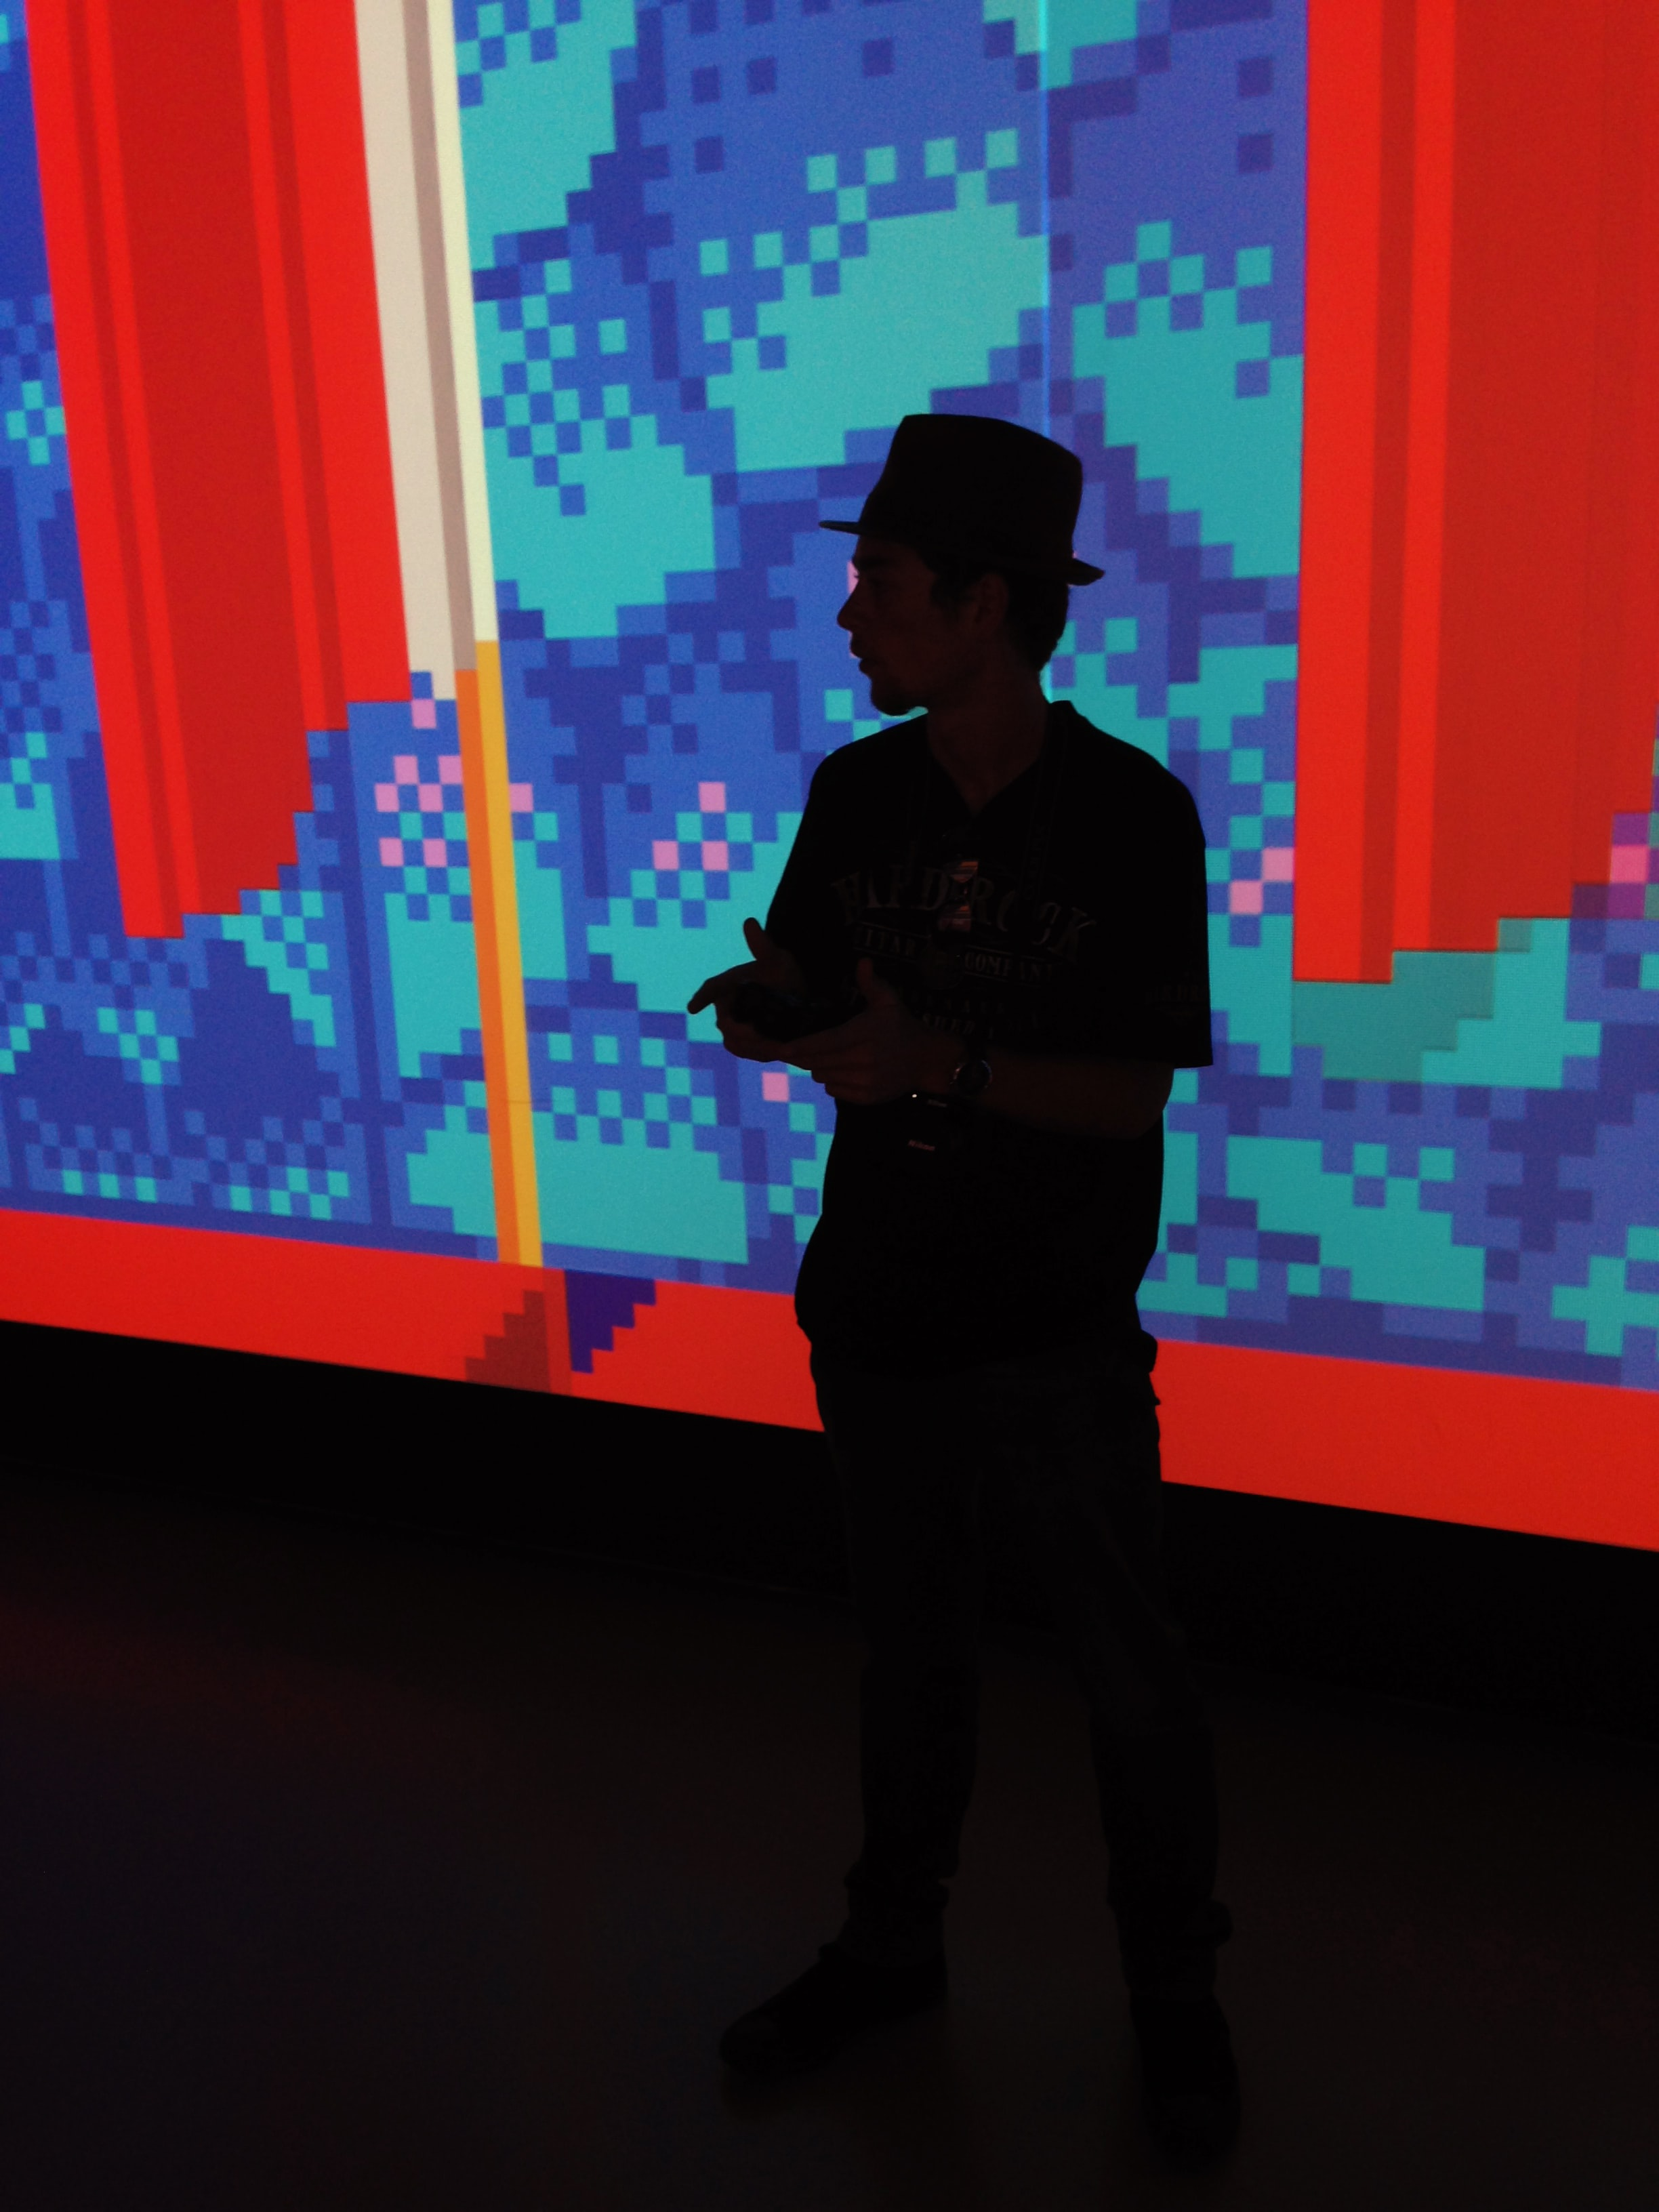 silhouette of man near multicolored wall